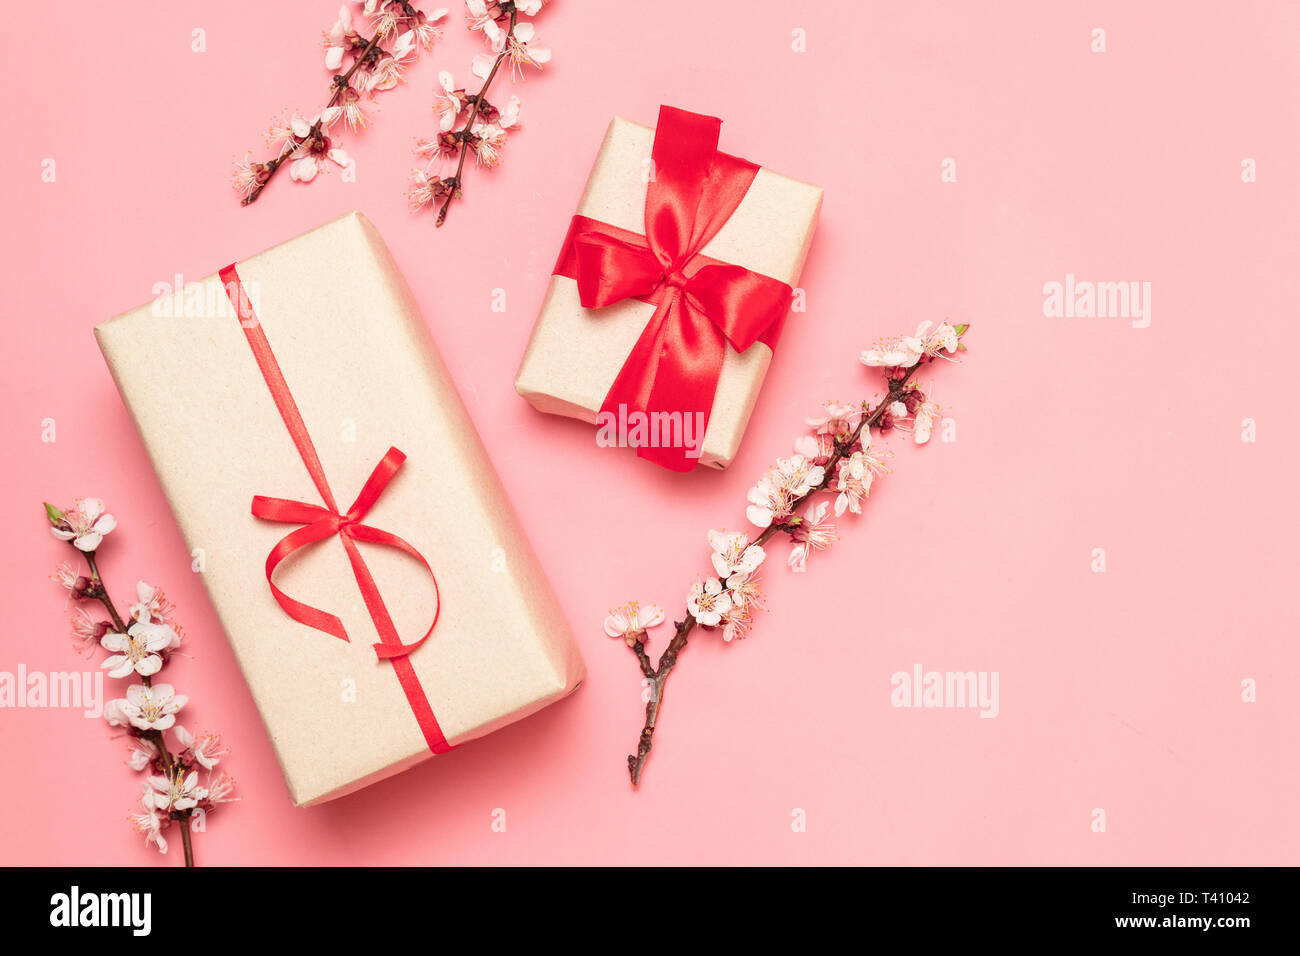 Mothers day, womens day concept. Gift box with red bows and flowers on a pink background. Flat lay, top view, copy space - Stock Image